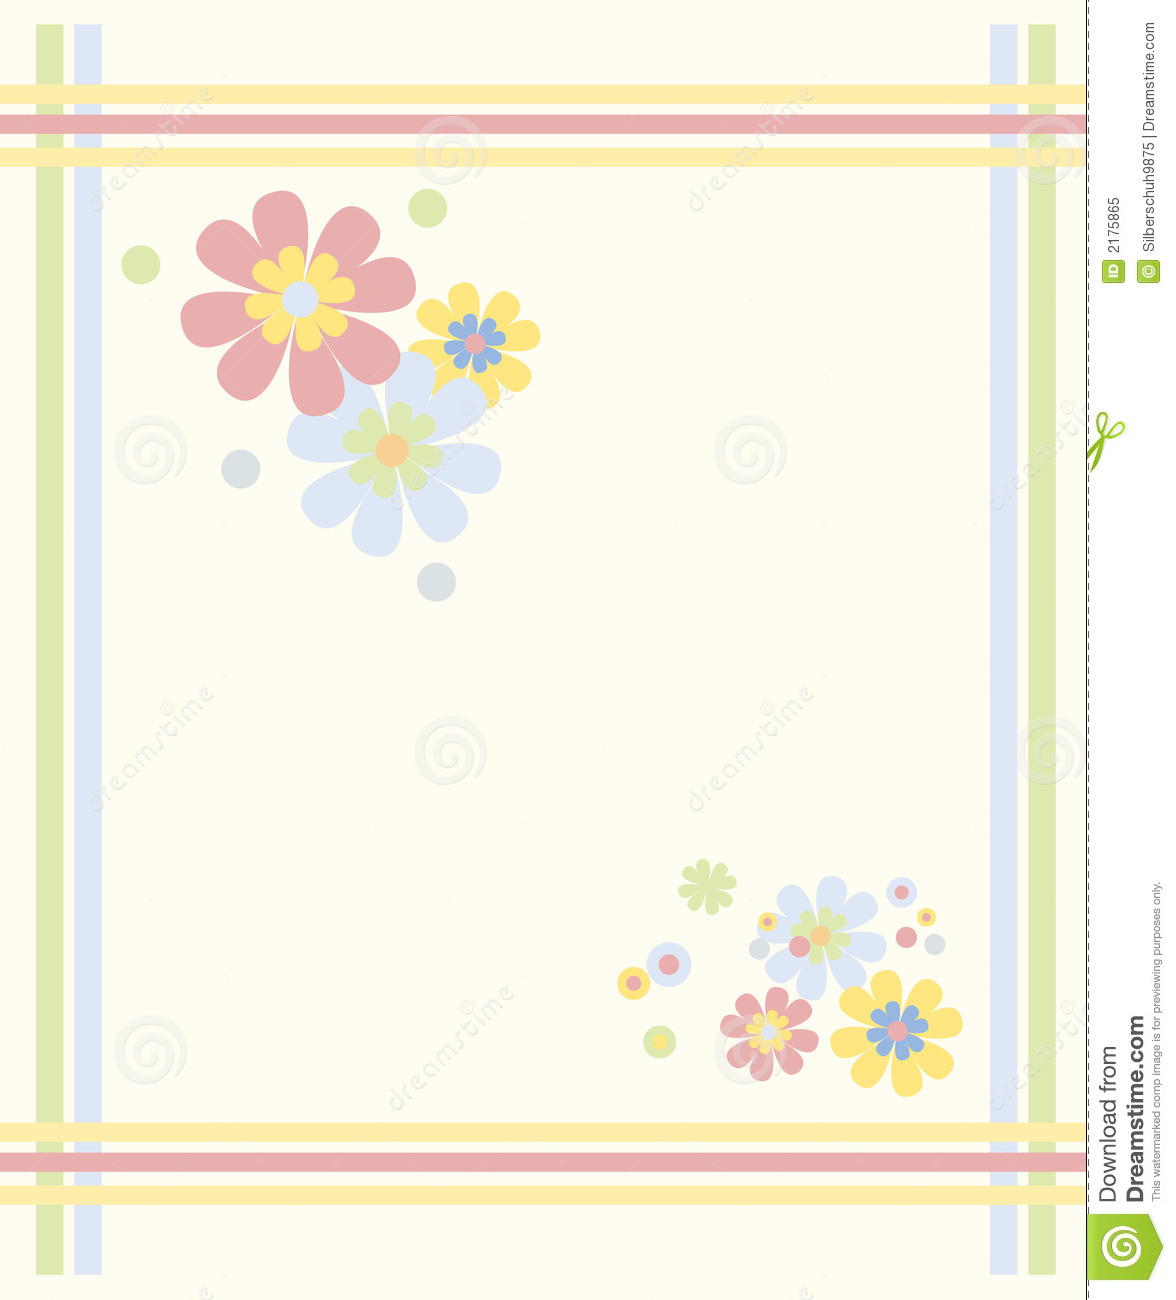 Pastel-colored Flower Frame Stock Vector - Illustration of ...